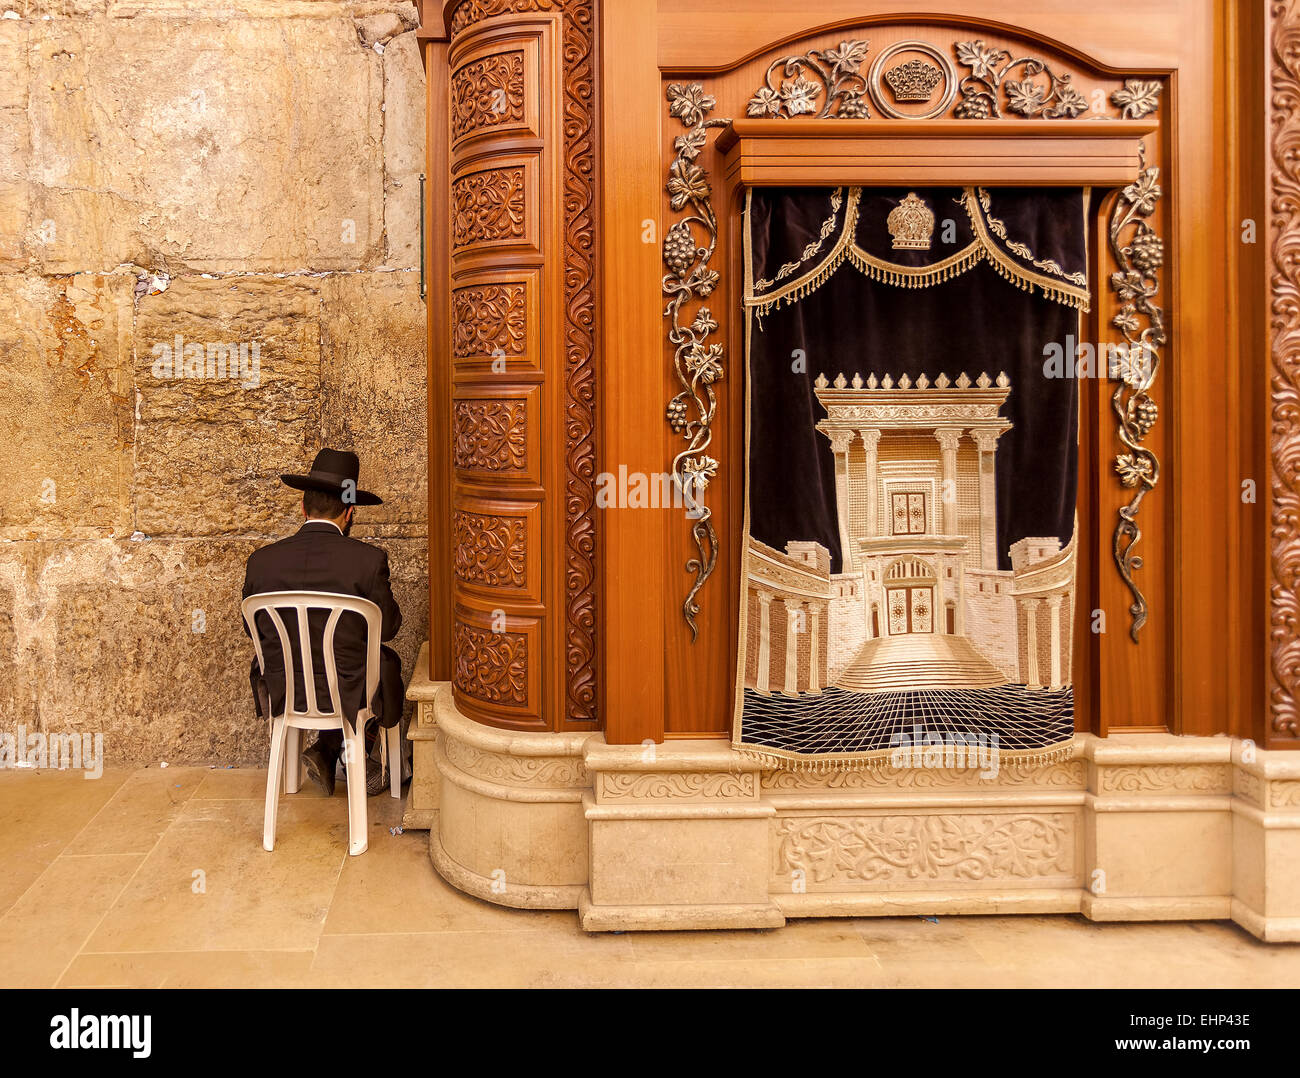 Carving wooden cabinet with Torah scrolls and prayer in Cave Synagogue in Jerusalem, Israel. - Stock Image